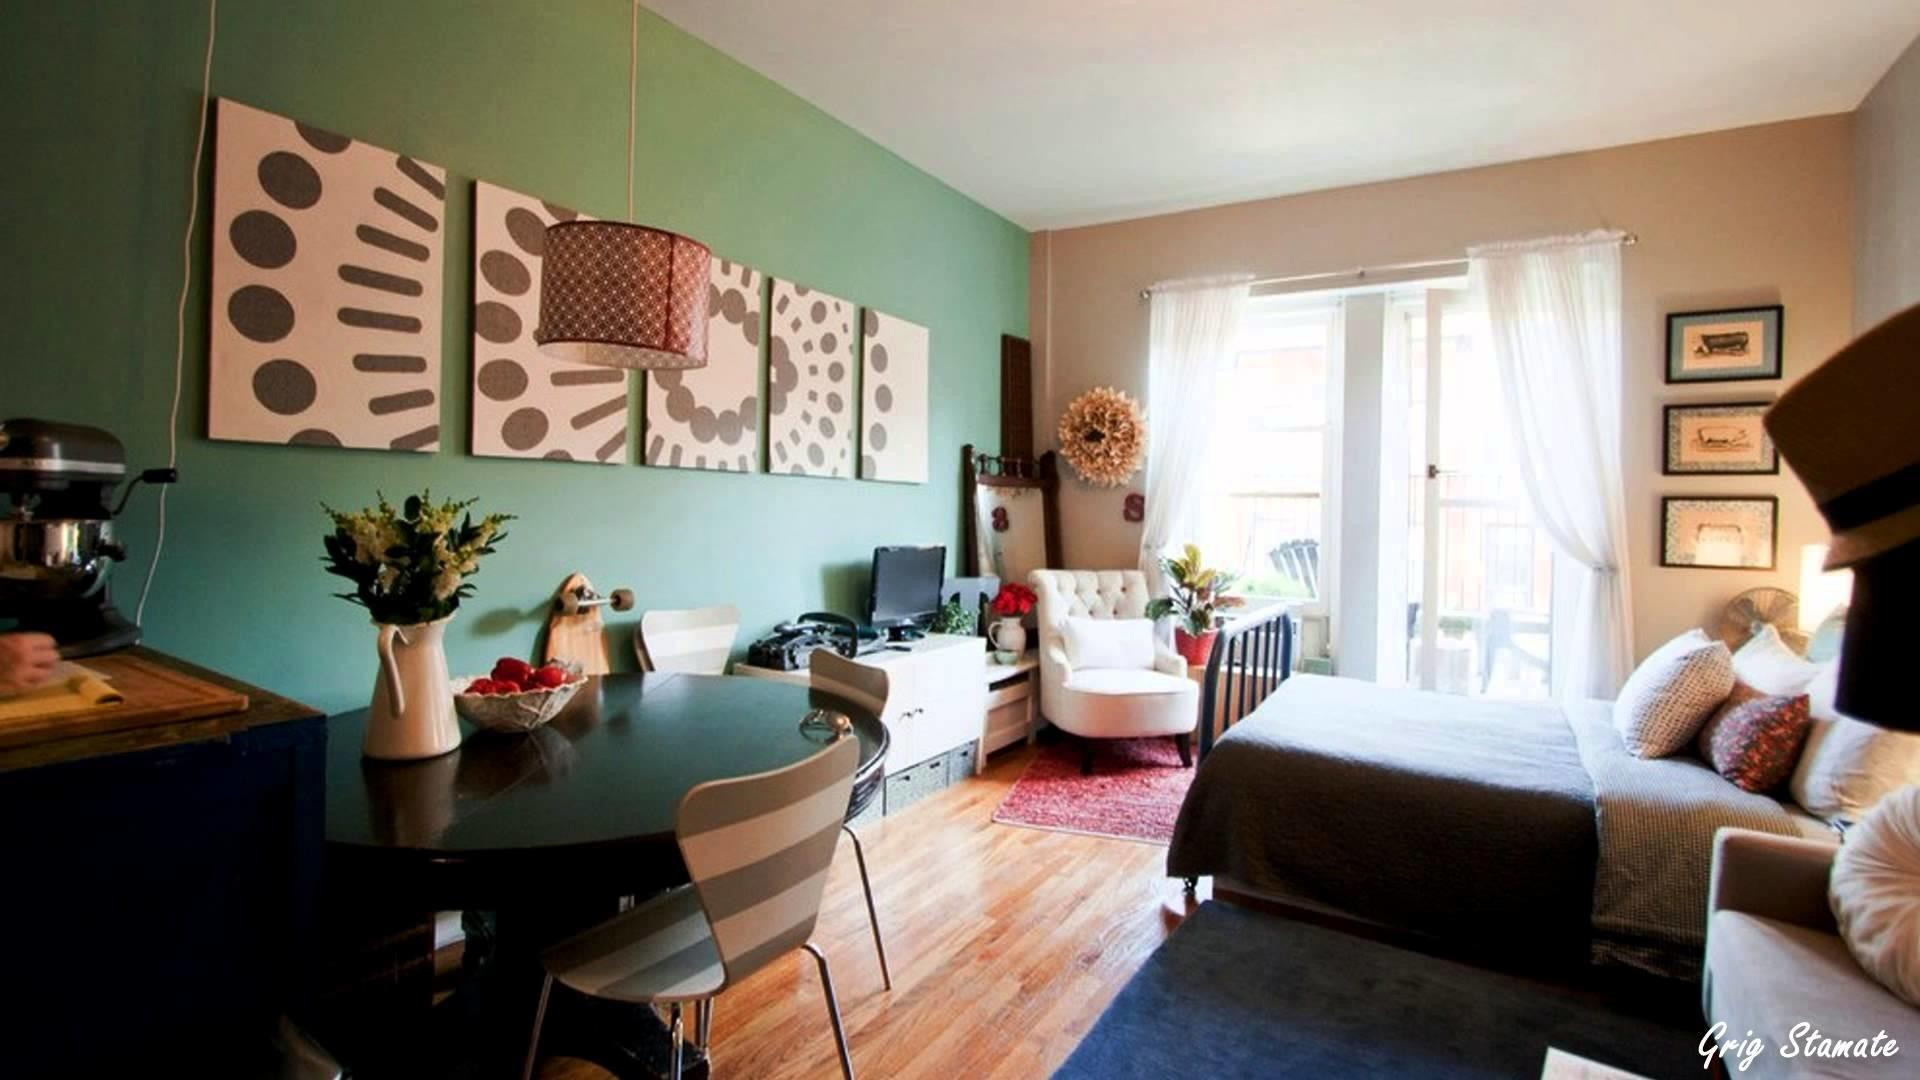 Studio Apartment Decorating Budget